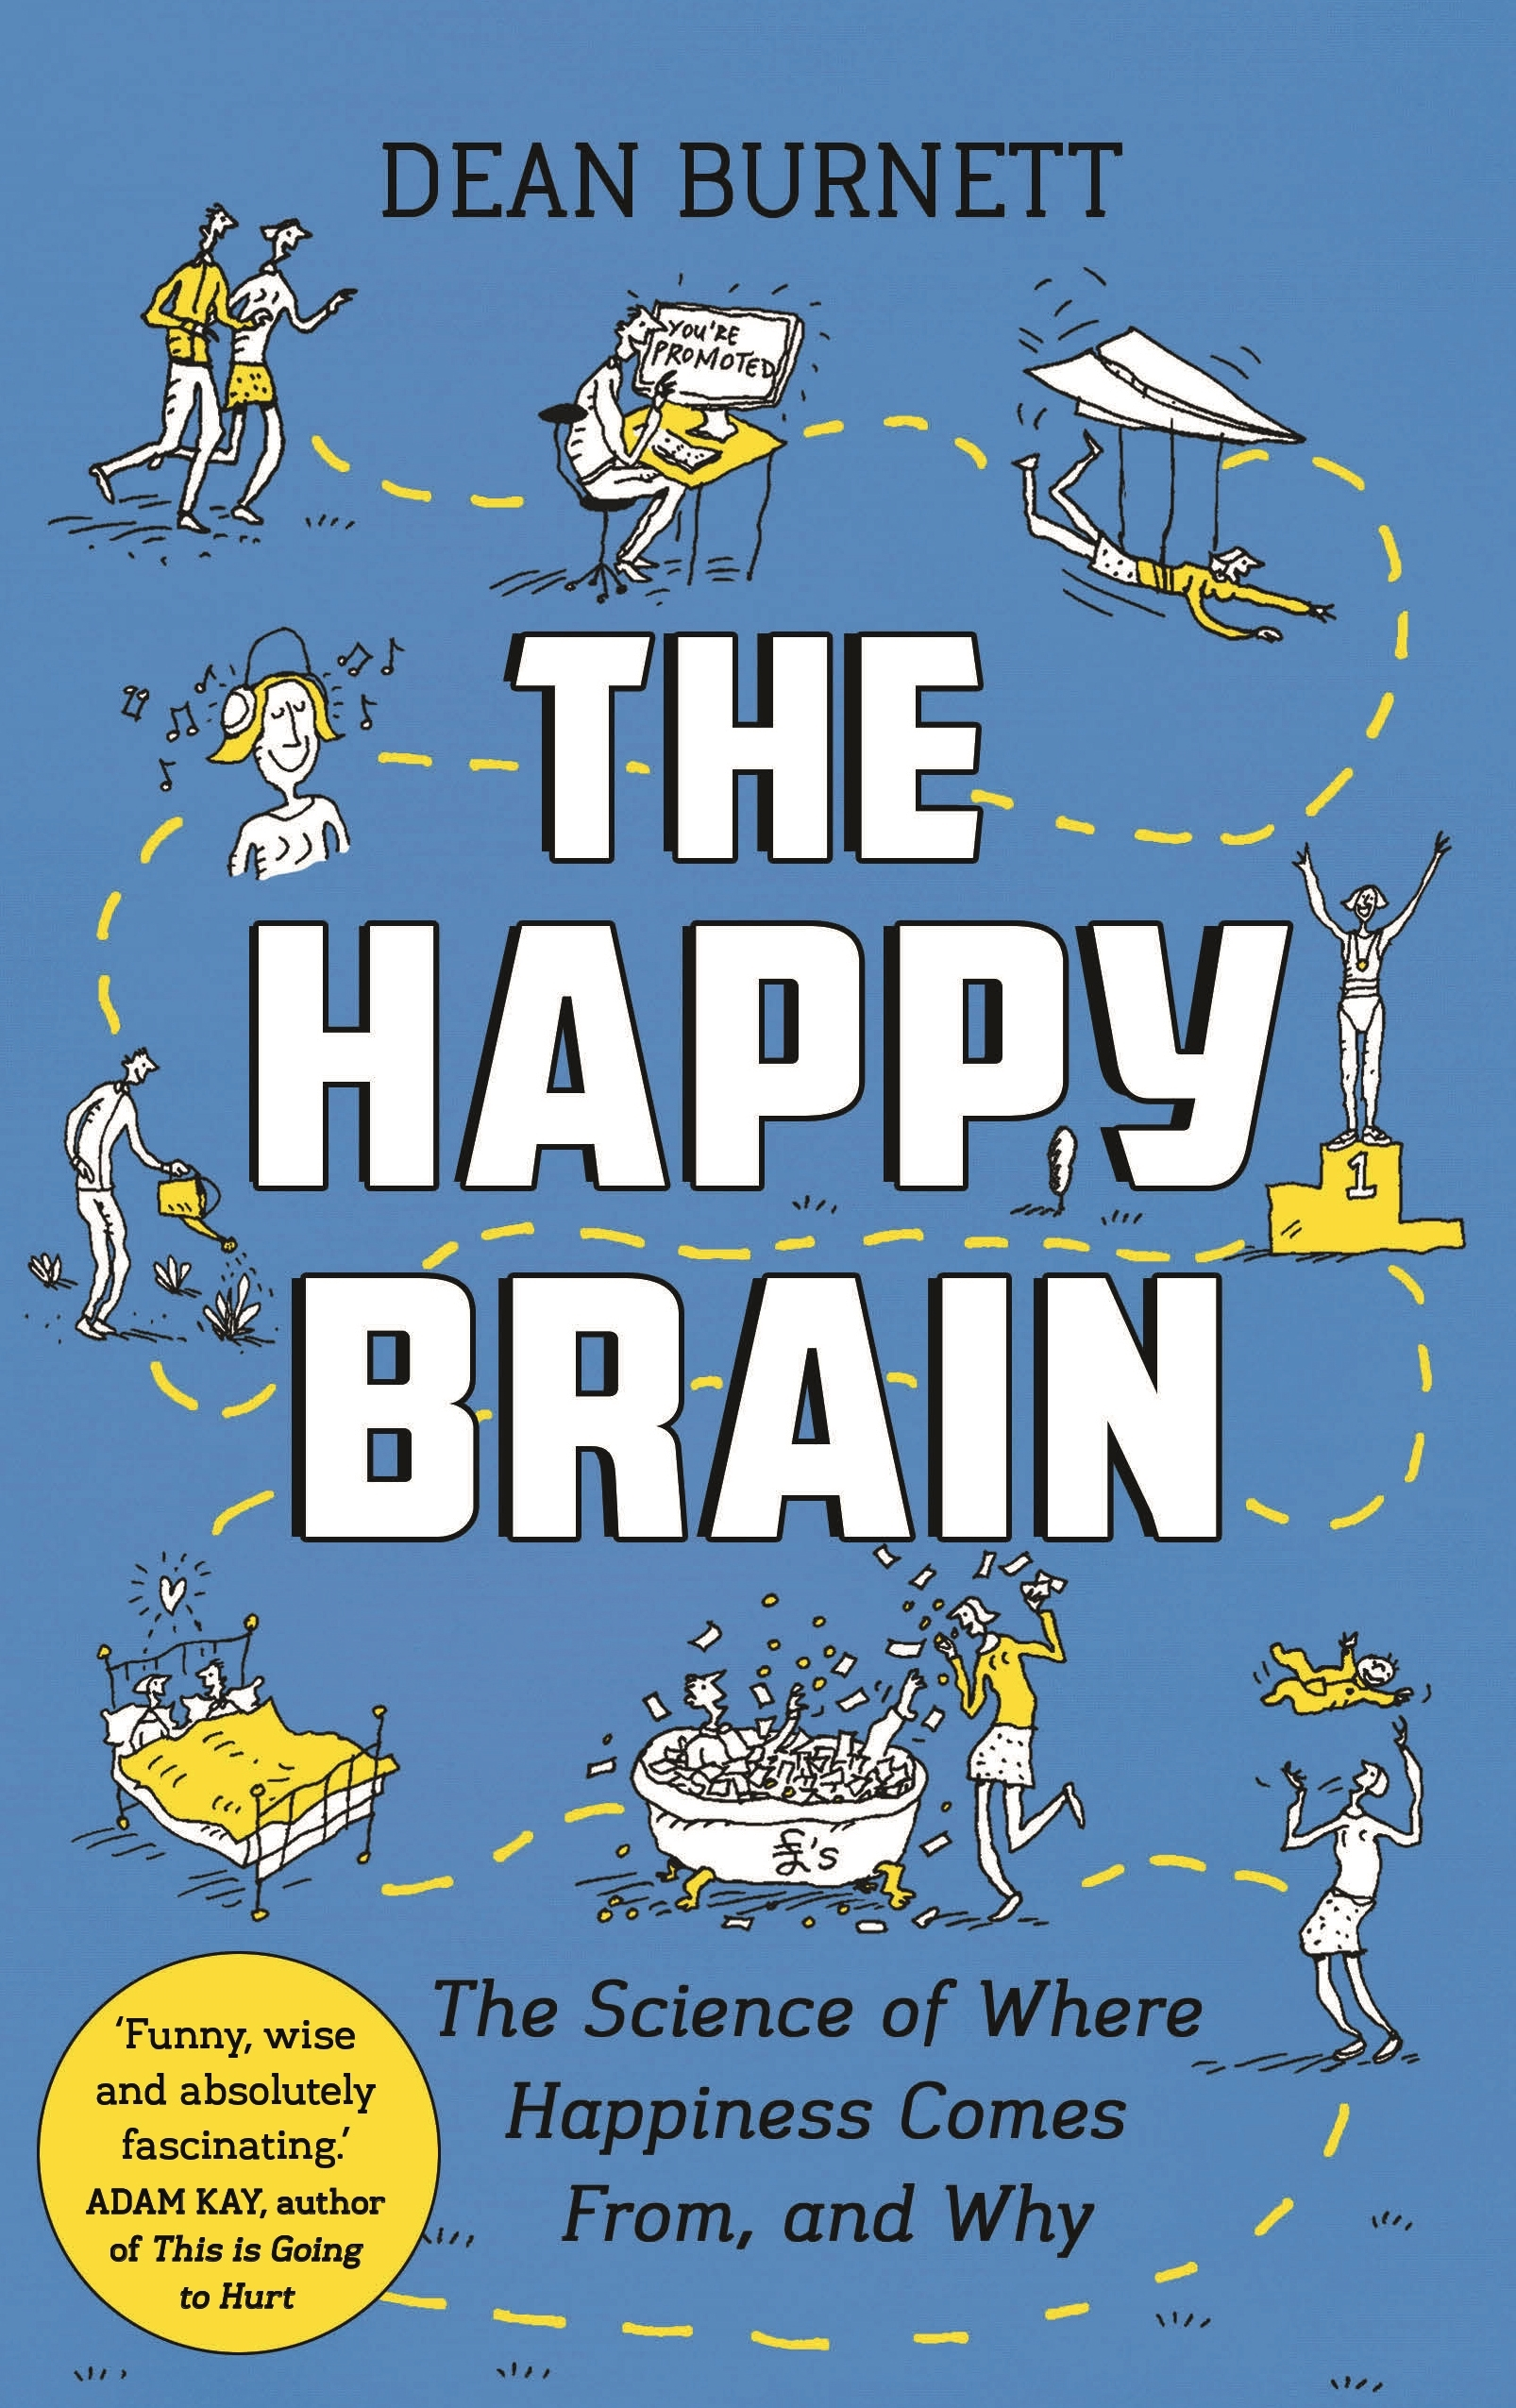 Dean Burnett The Happy Brain